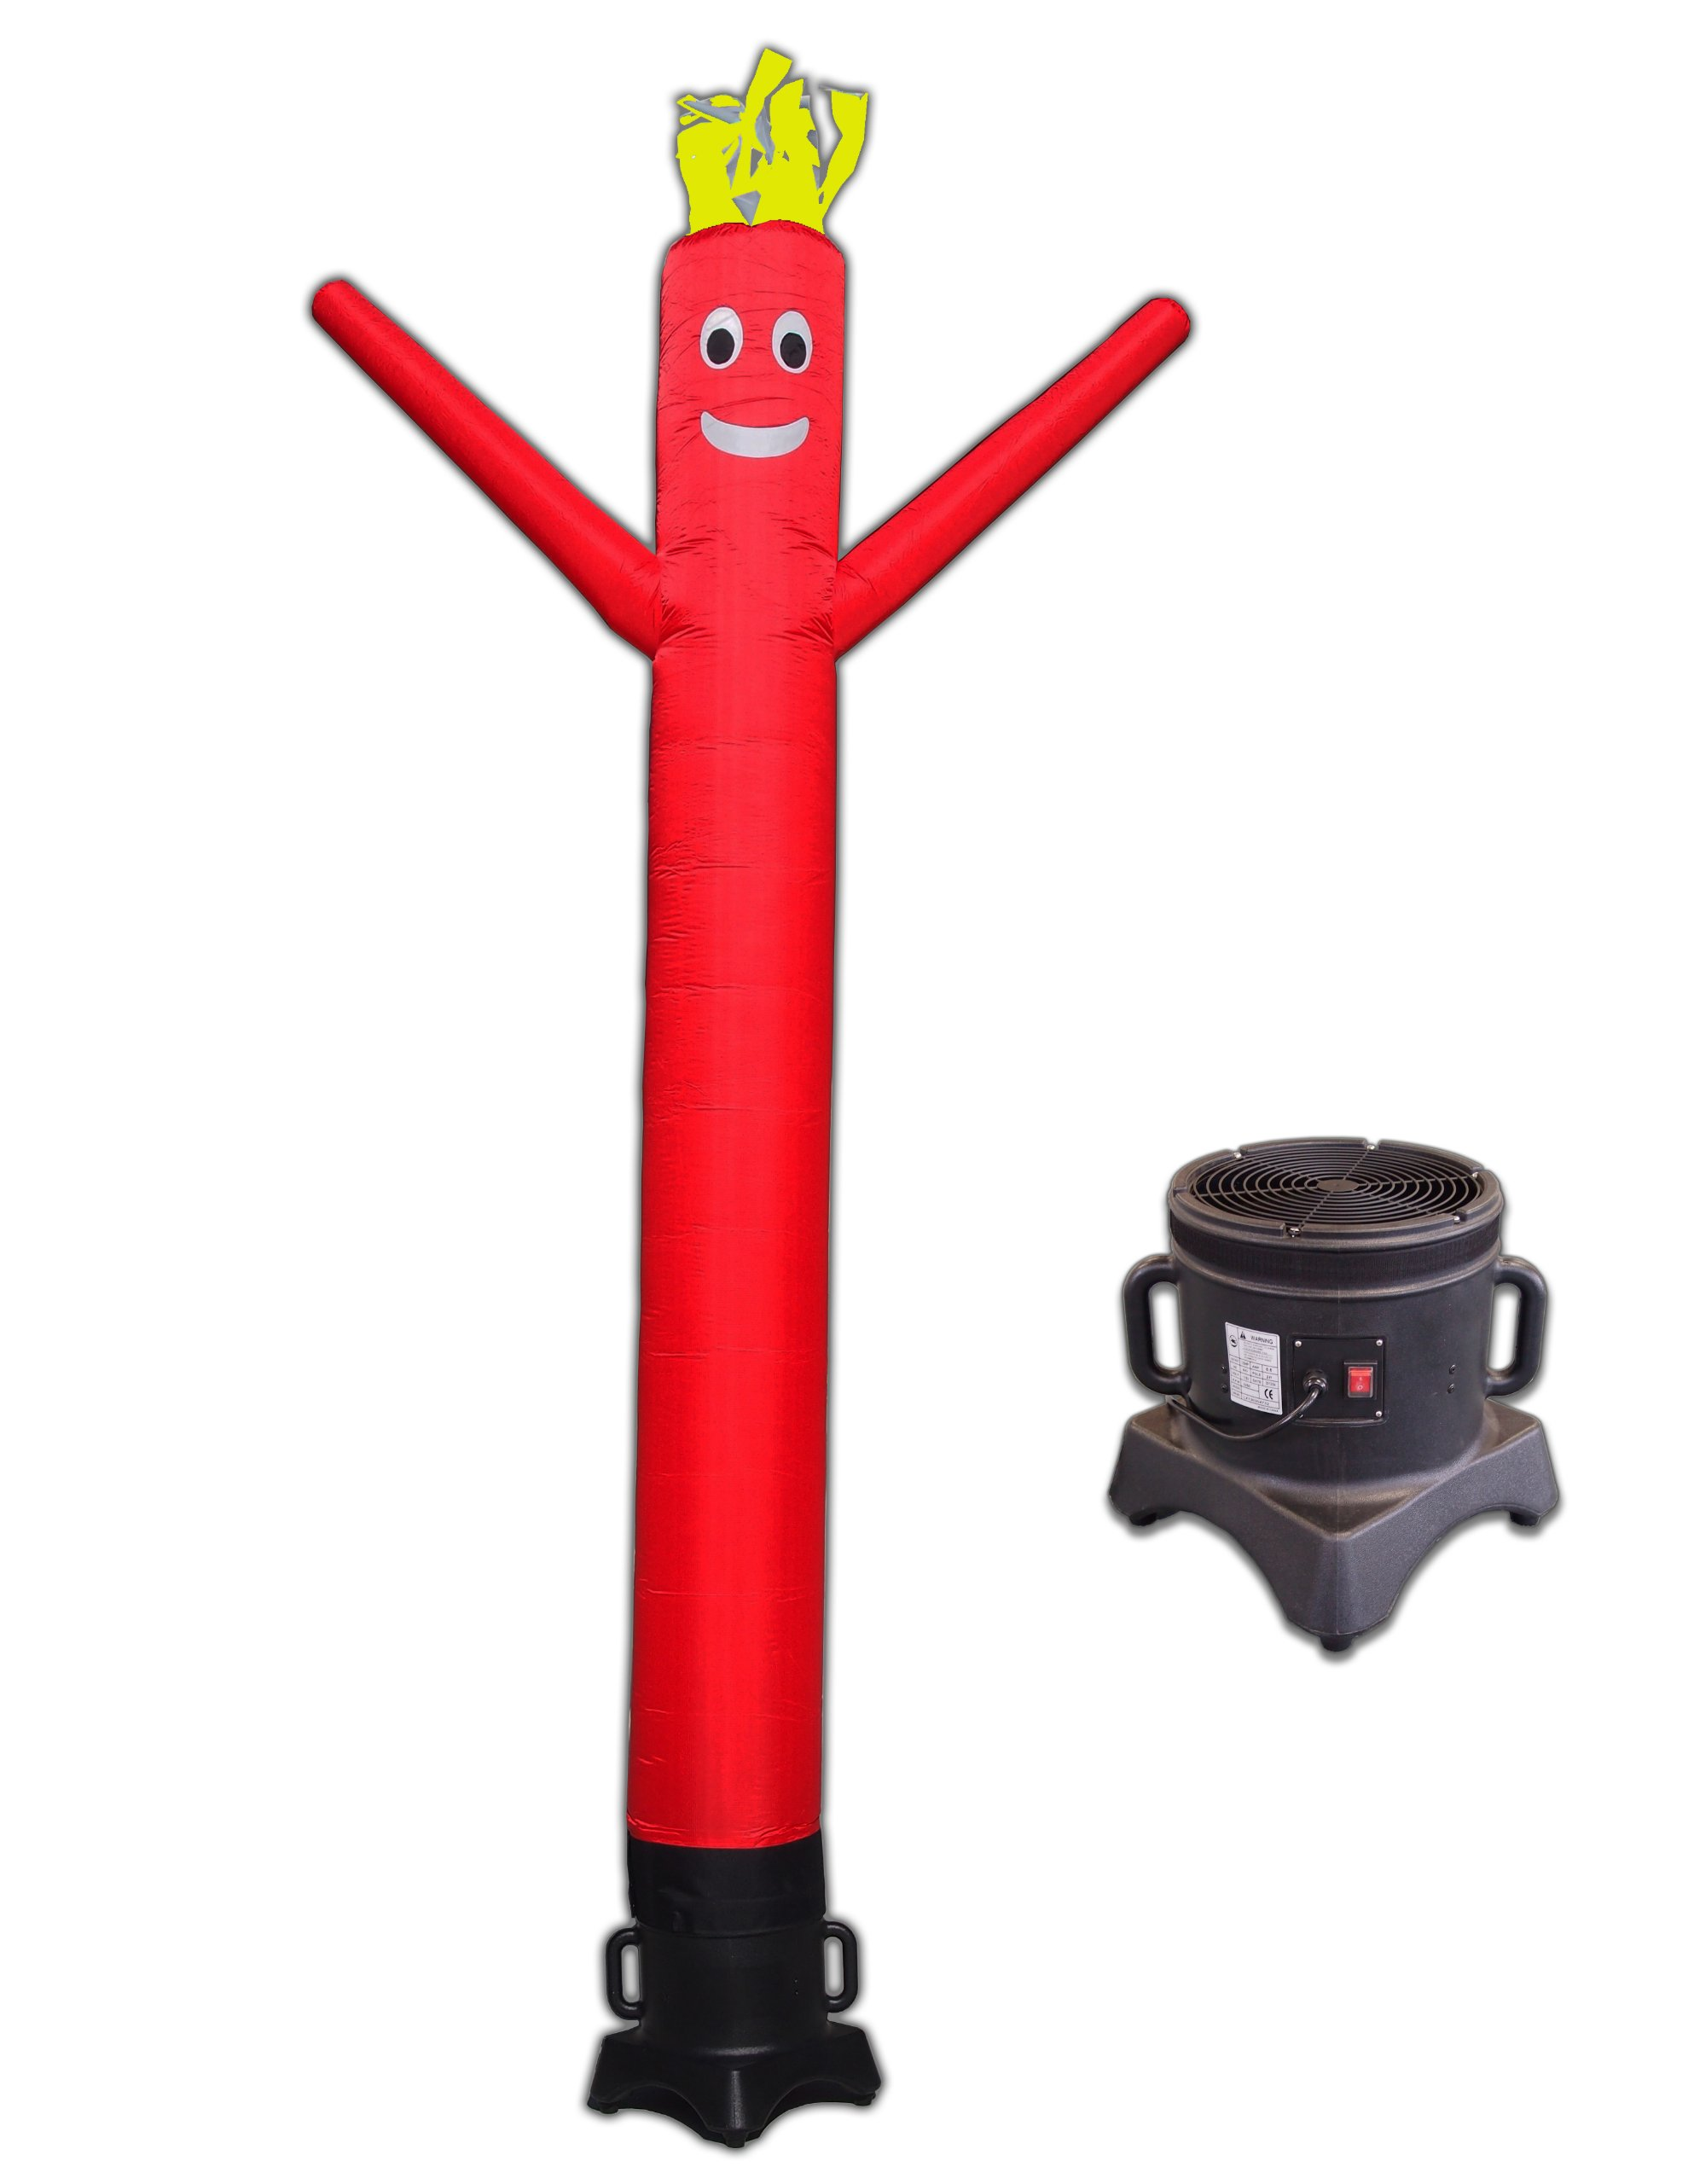 LookOurWay 10ft Air Dancers Inflatable Tube Man Complete Set with 1/2 HP Sky Dancer Blower, 10-Feet, Red by LookOurWay